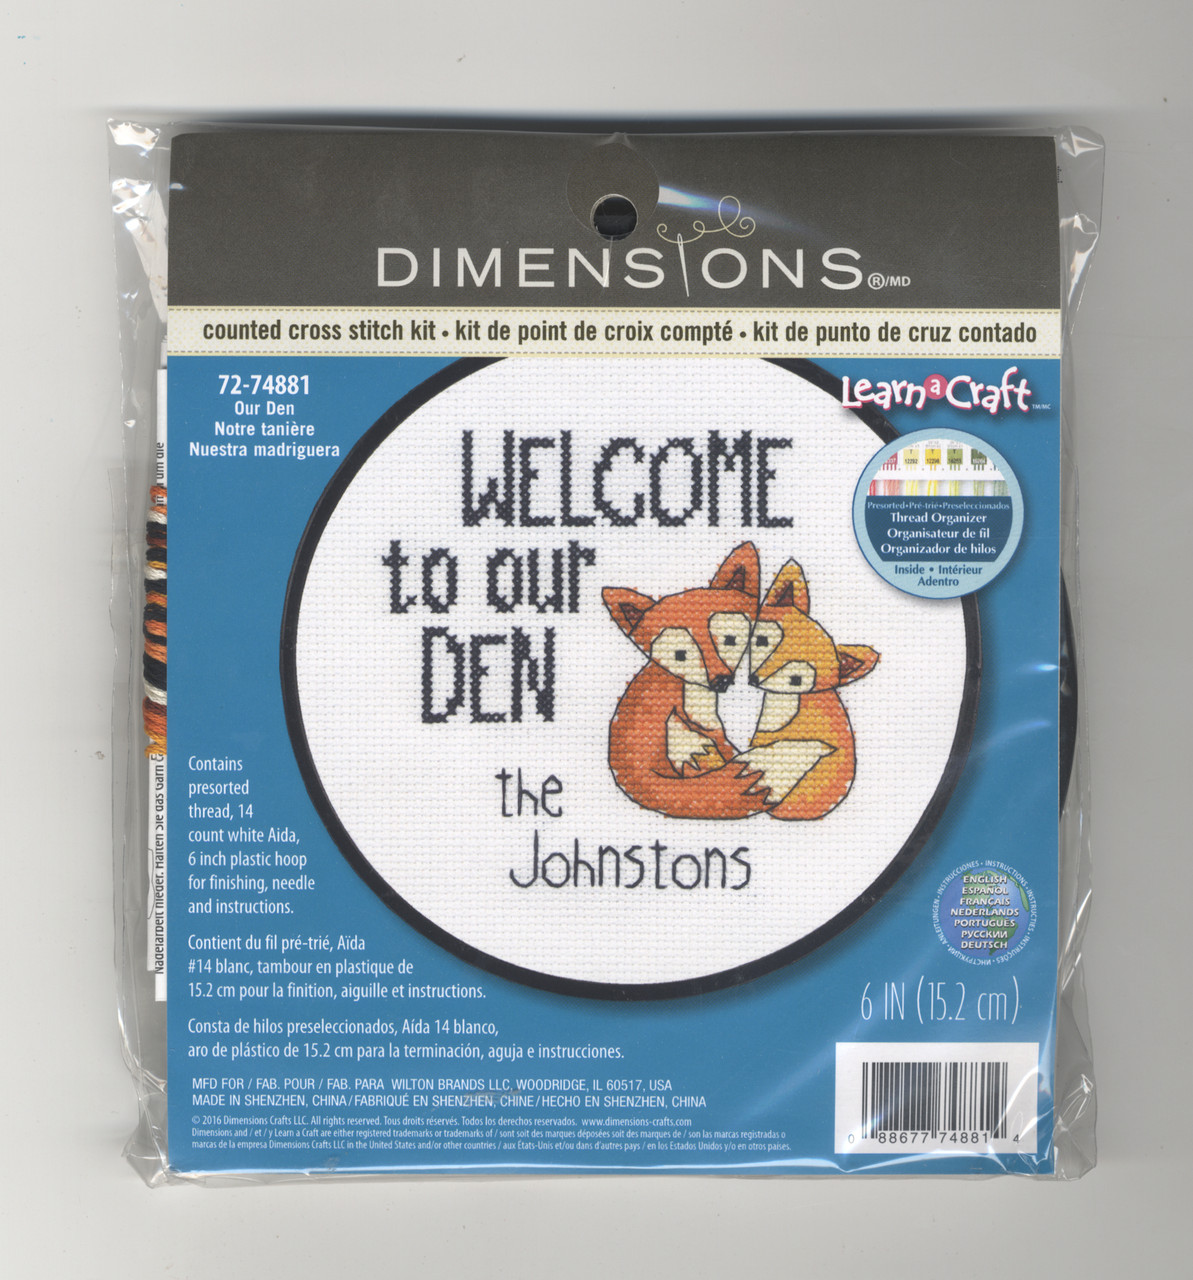 Dimensions Learn a Craft - Our Den